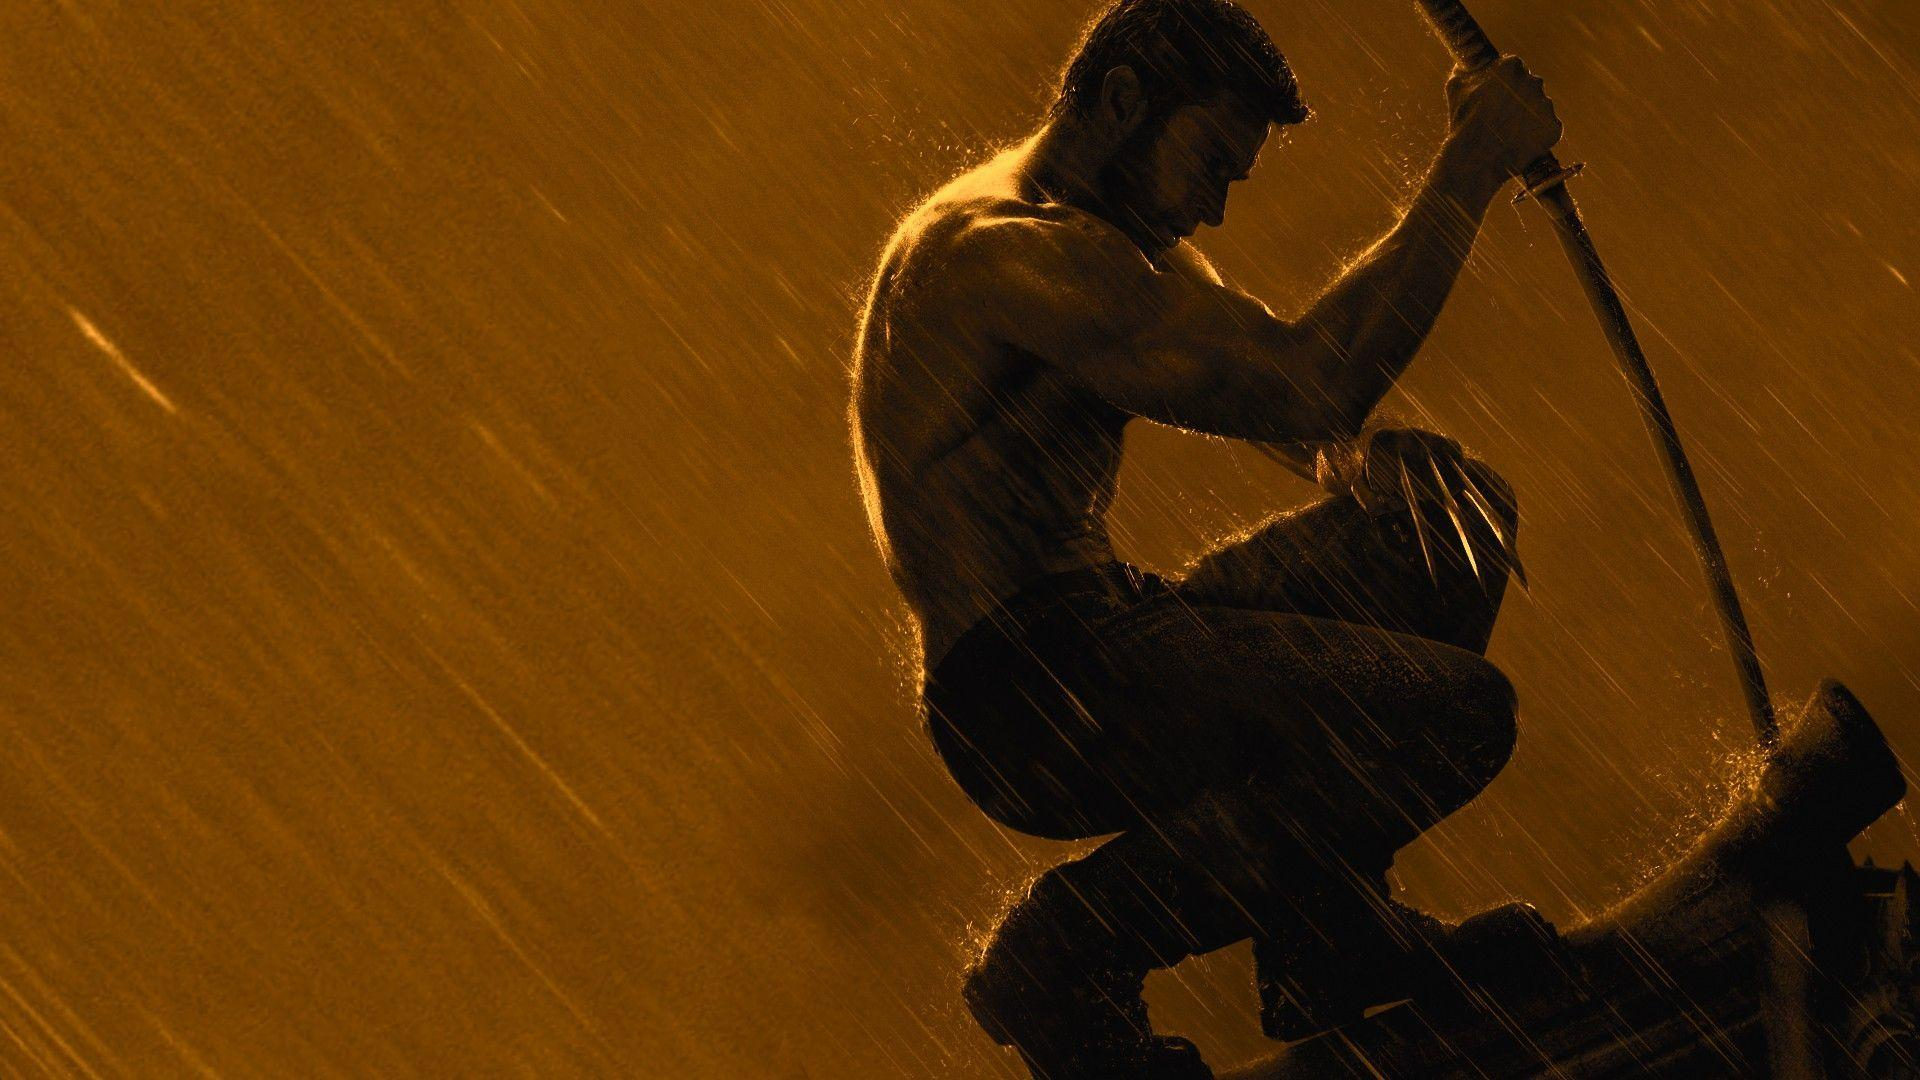 wolverine hd wallpapers - photo #2